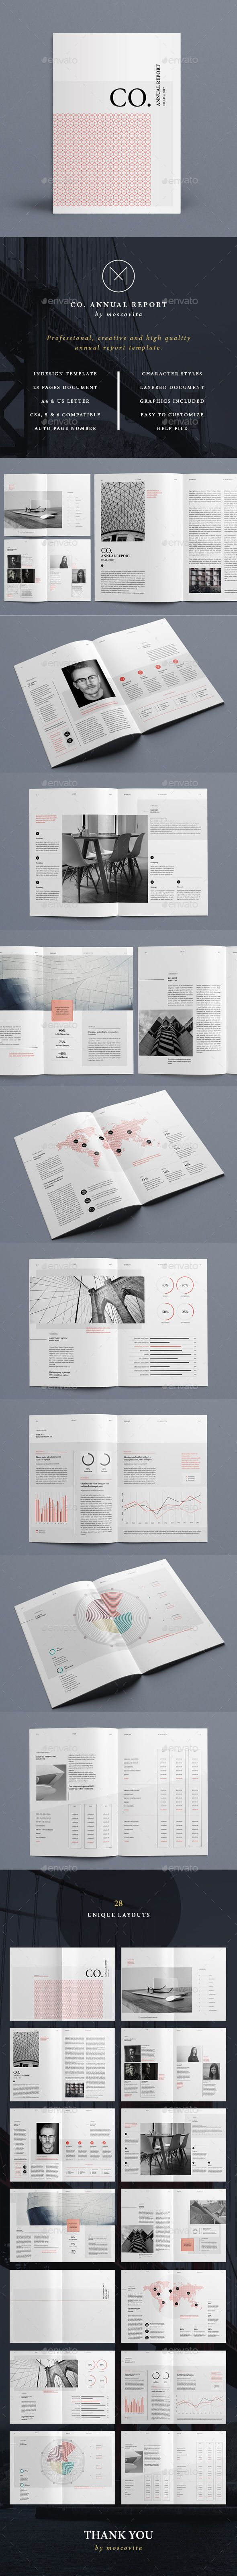 CO. Annual Report